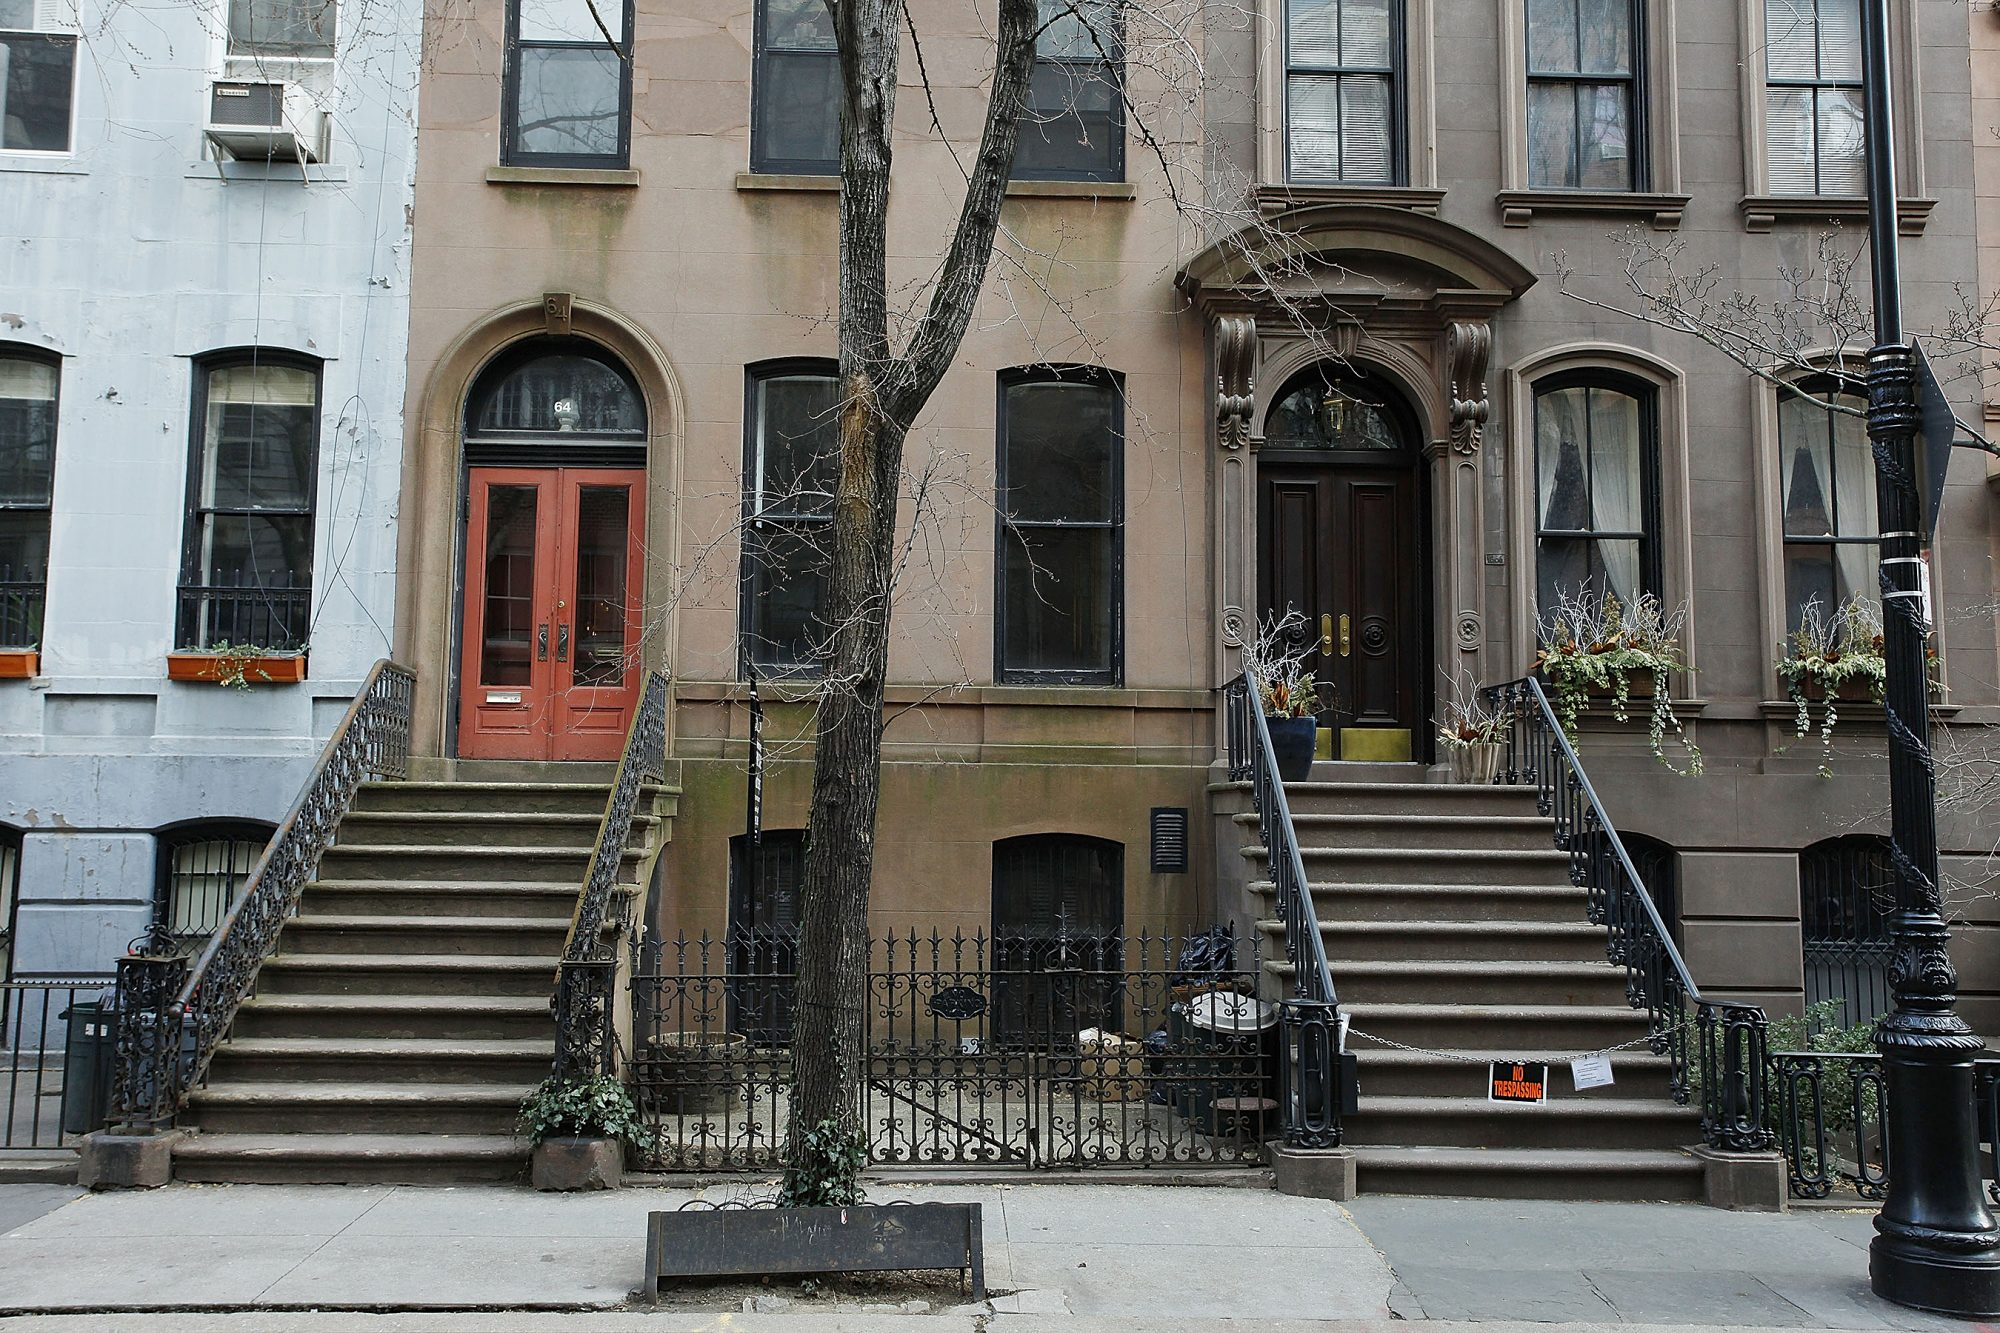 Sex and the City: Carrie Bradshaw's Apartment